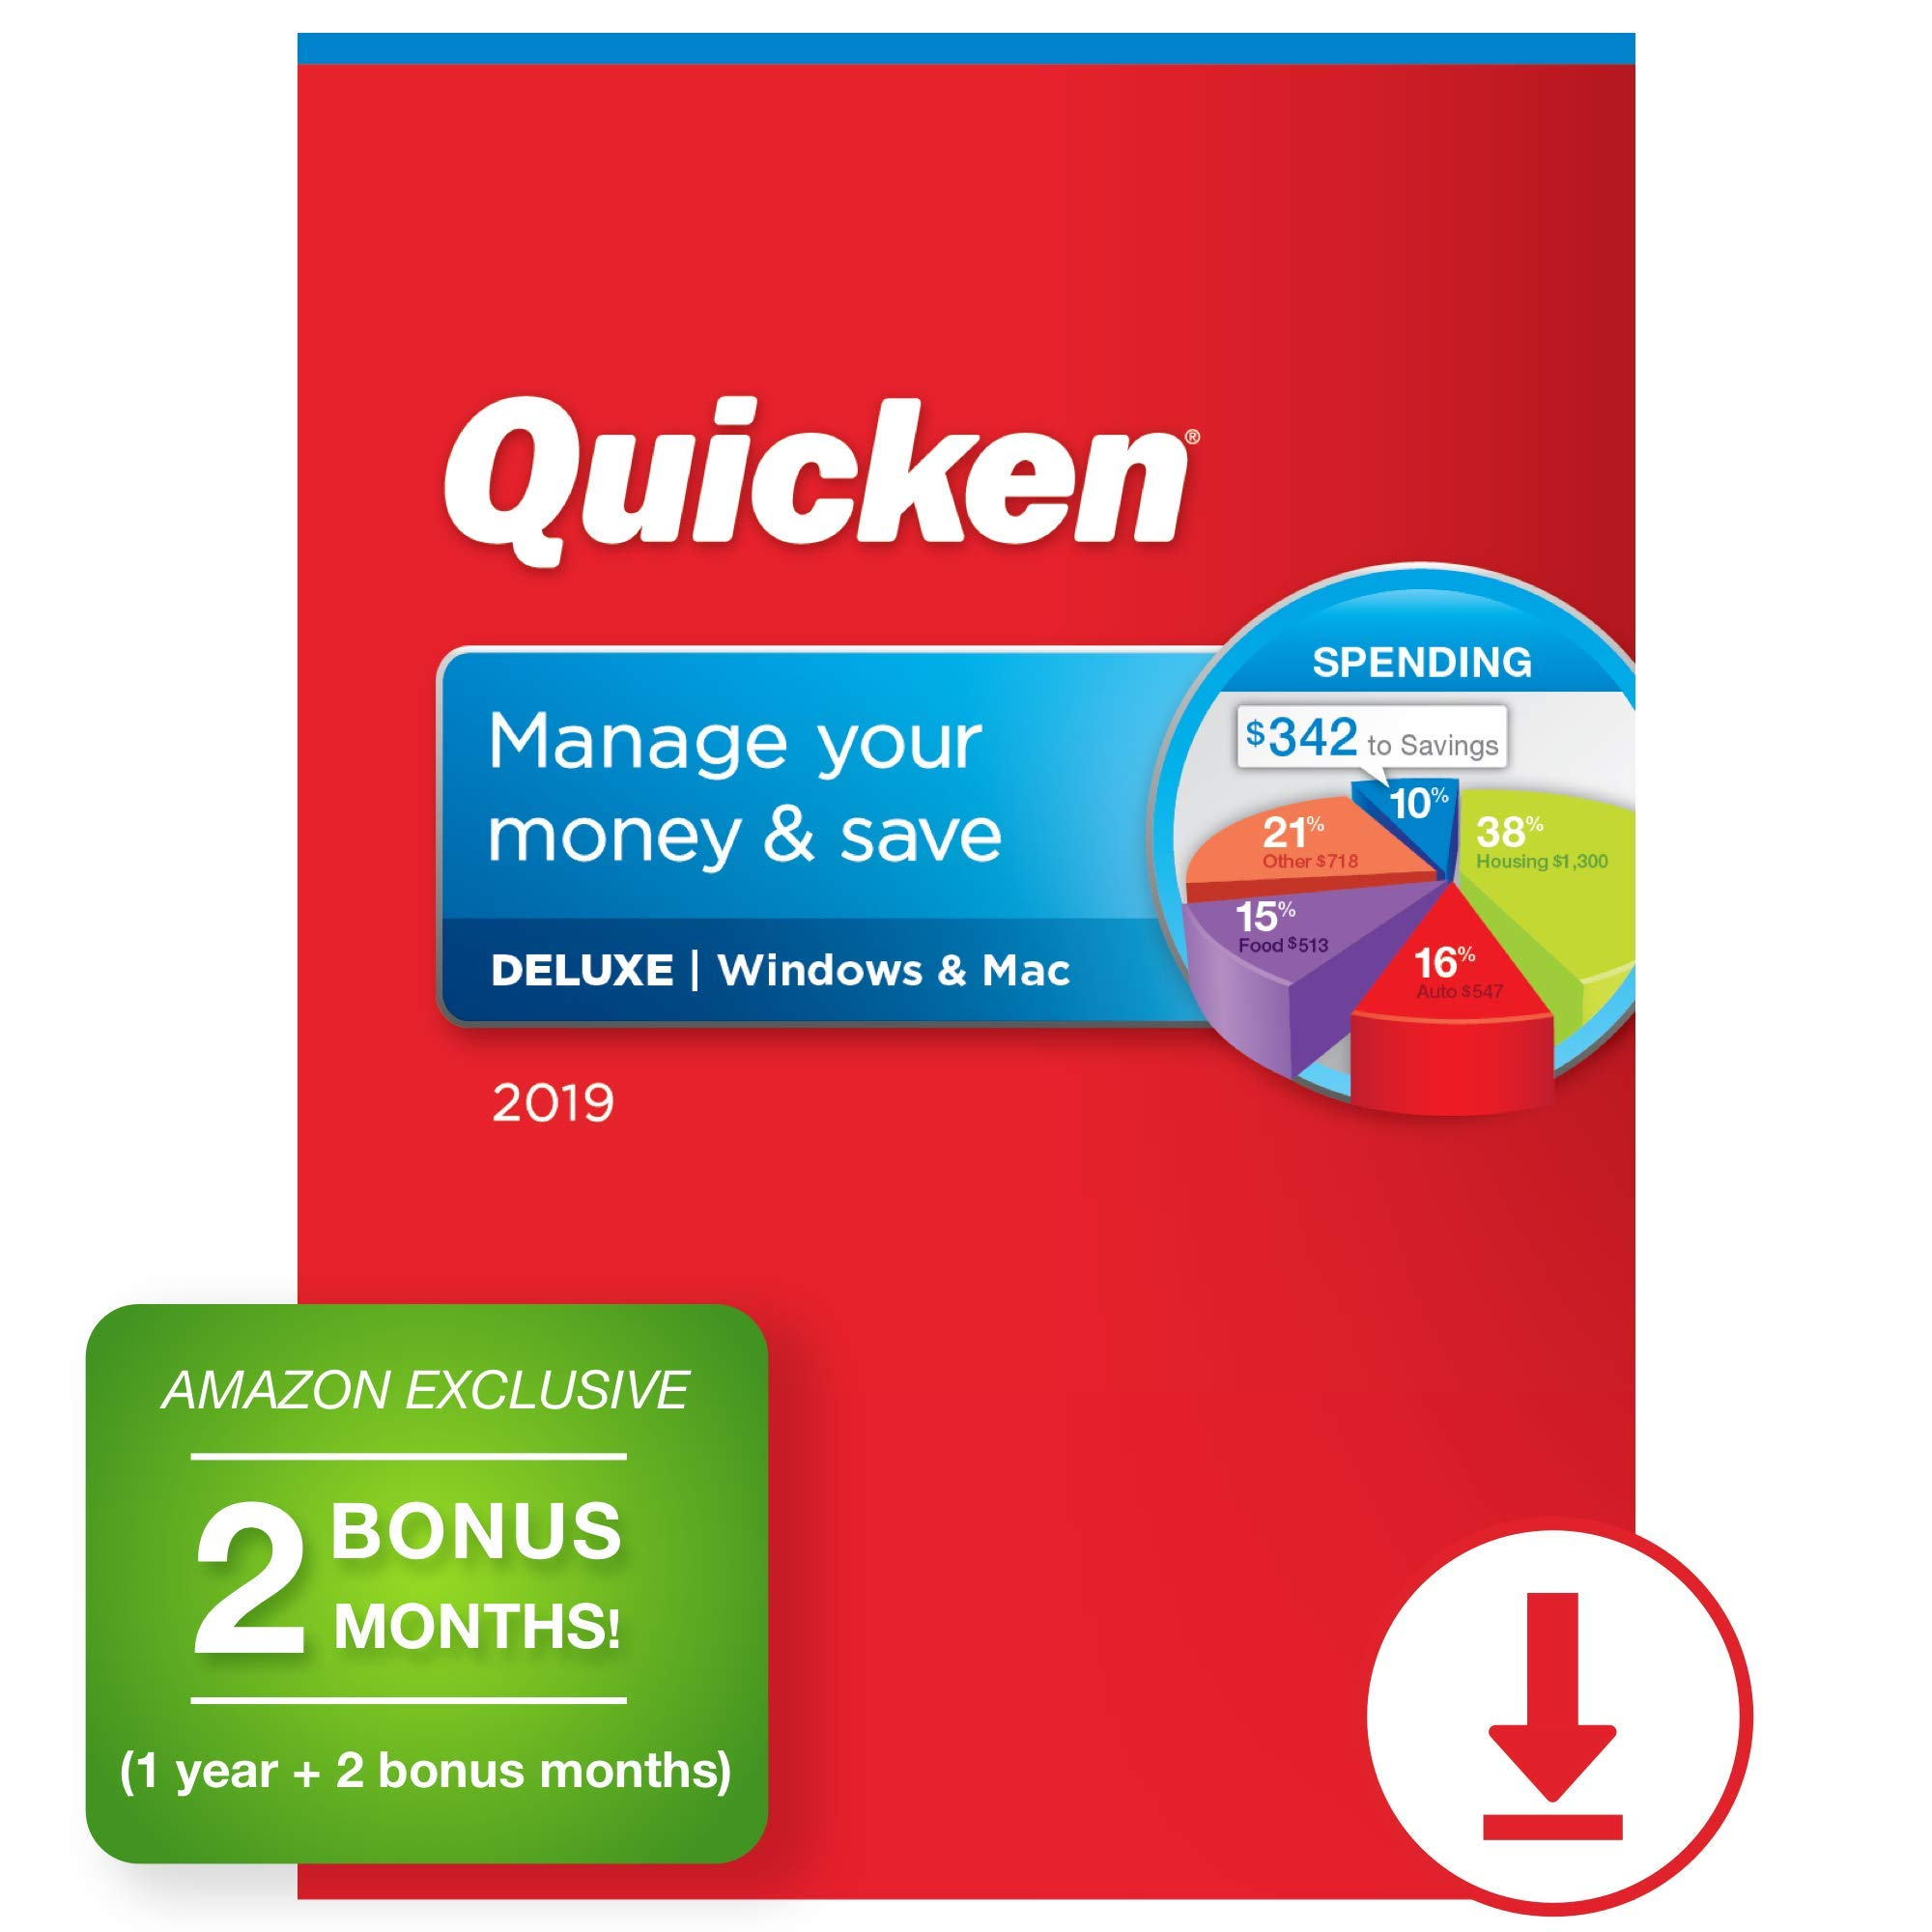 Quicken Deluxe 2019 Personal Finance & Budgeting Software [PC/Mac Download] 1-Year Subscription + 2 Bonus Months [Amazon Exclusive] by Quicken